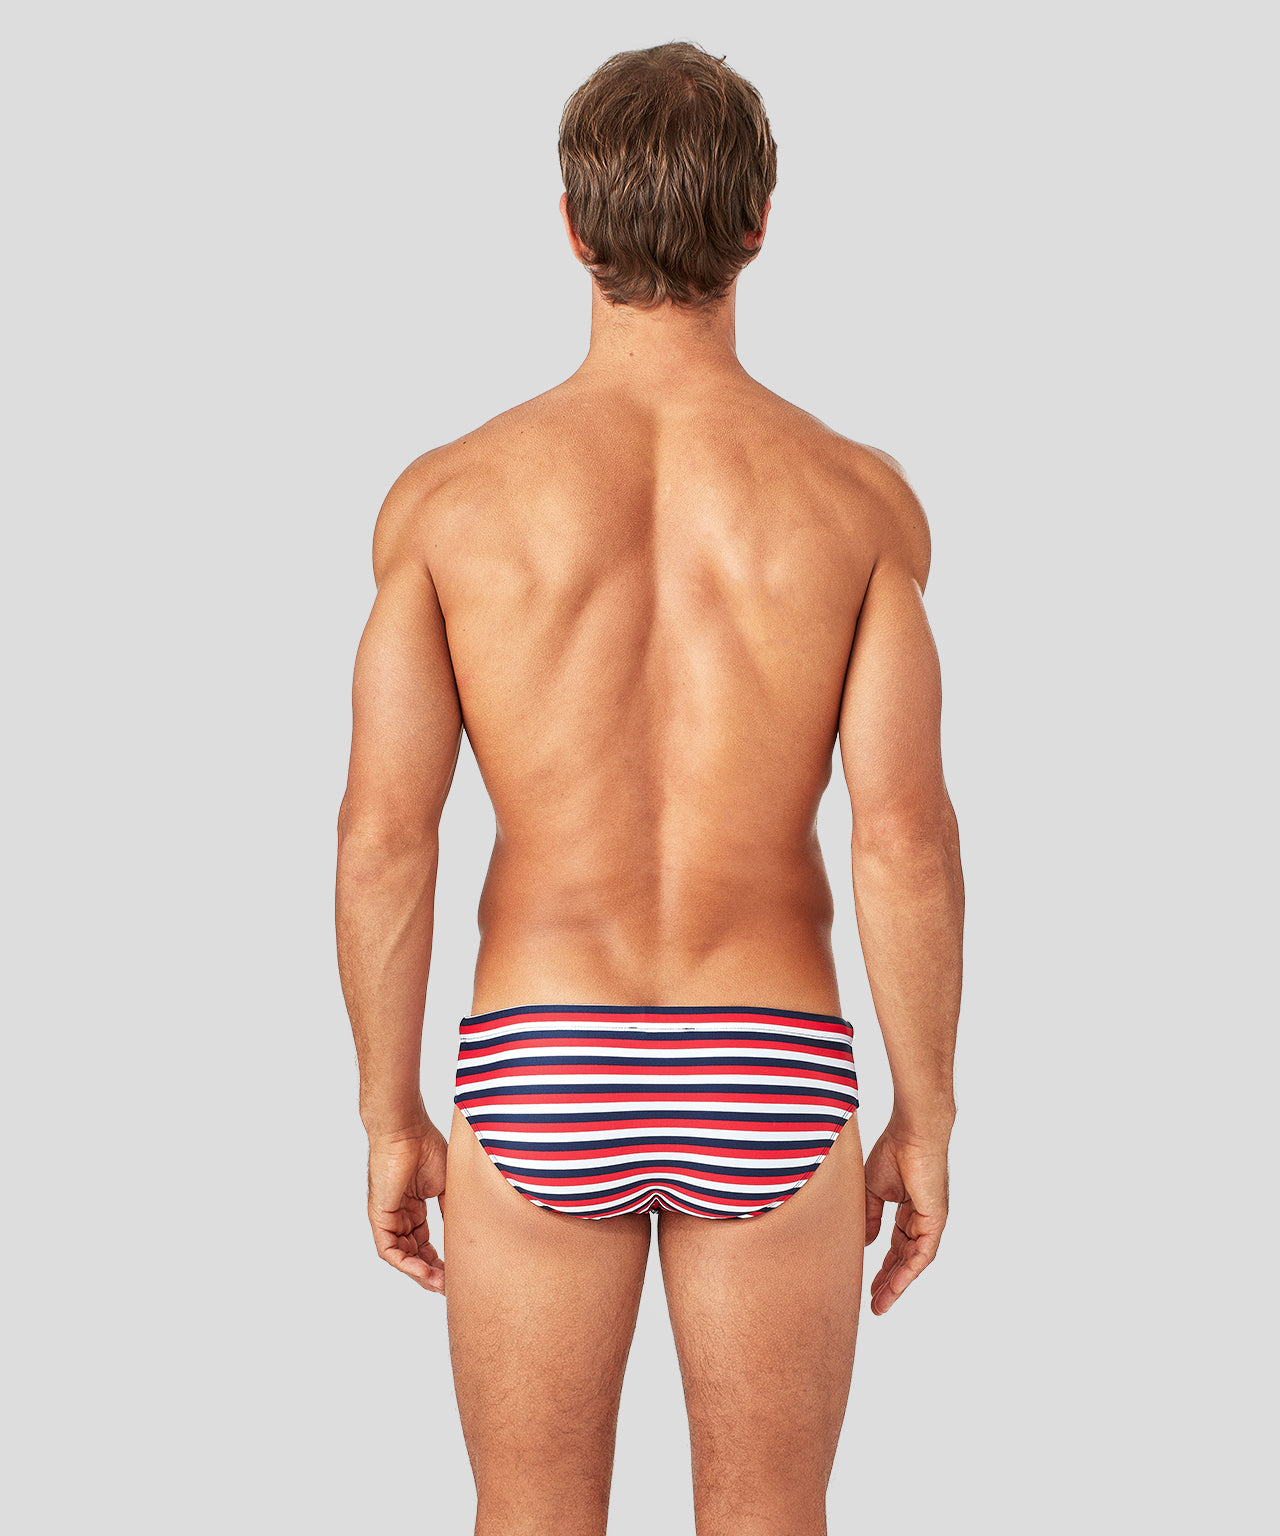 Swim Briefs Horizontal Thin Stripes - navy/red/white